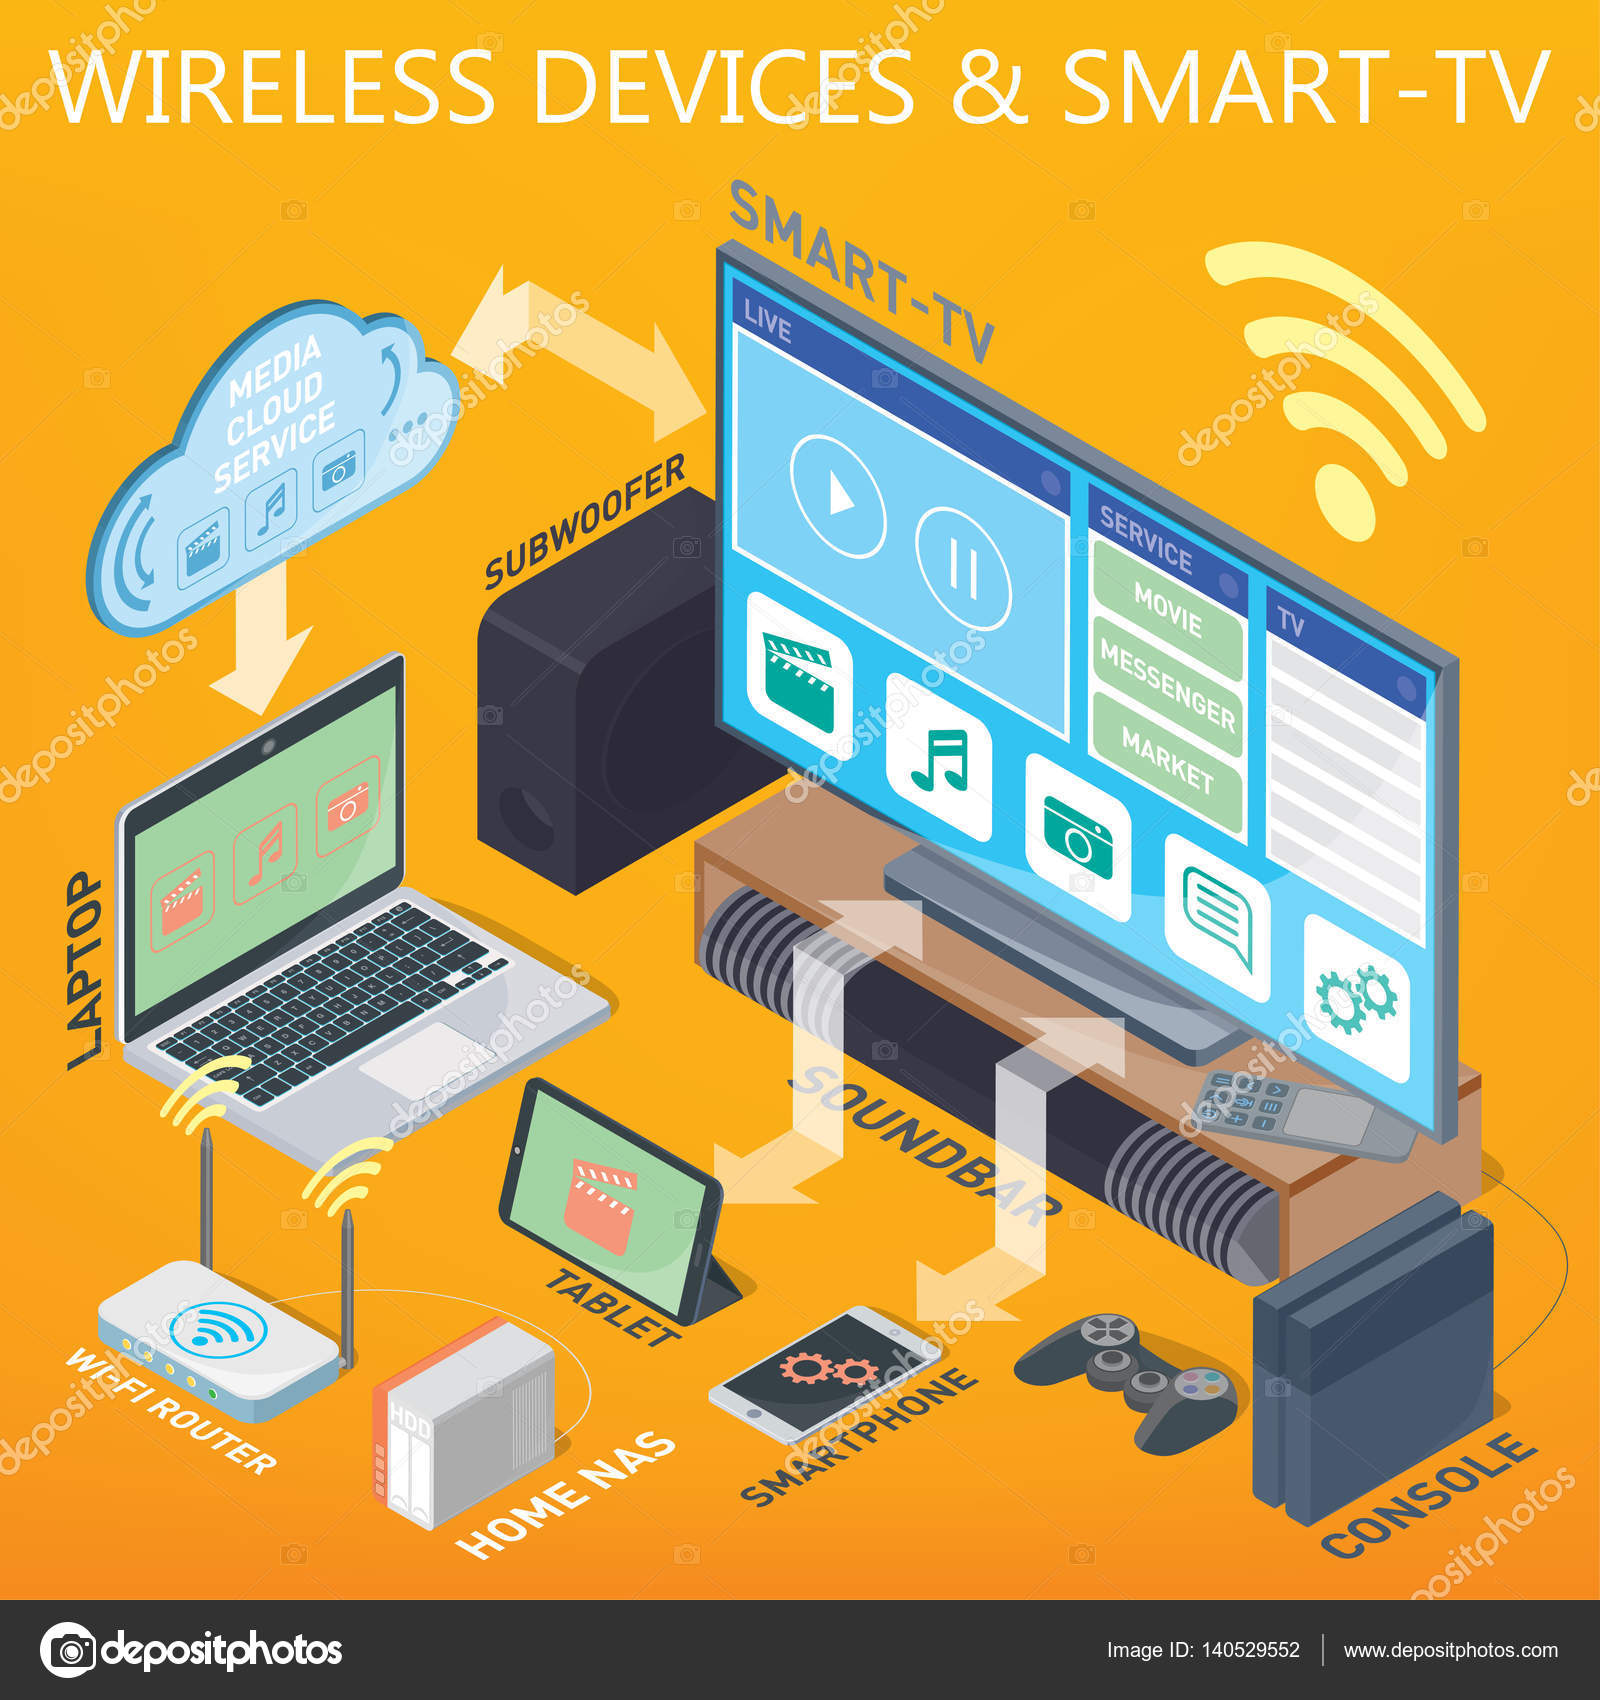 Symbols For Wireless Home Theater Diagram Wiring Library Whirlpool Dryer Wed5840sw0 Smart Tv Smartphone Tablet And Other Modern Devices In A